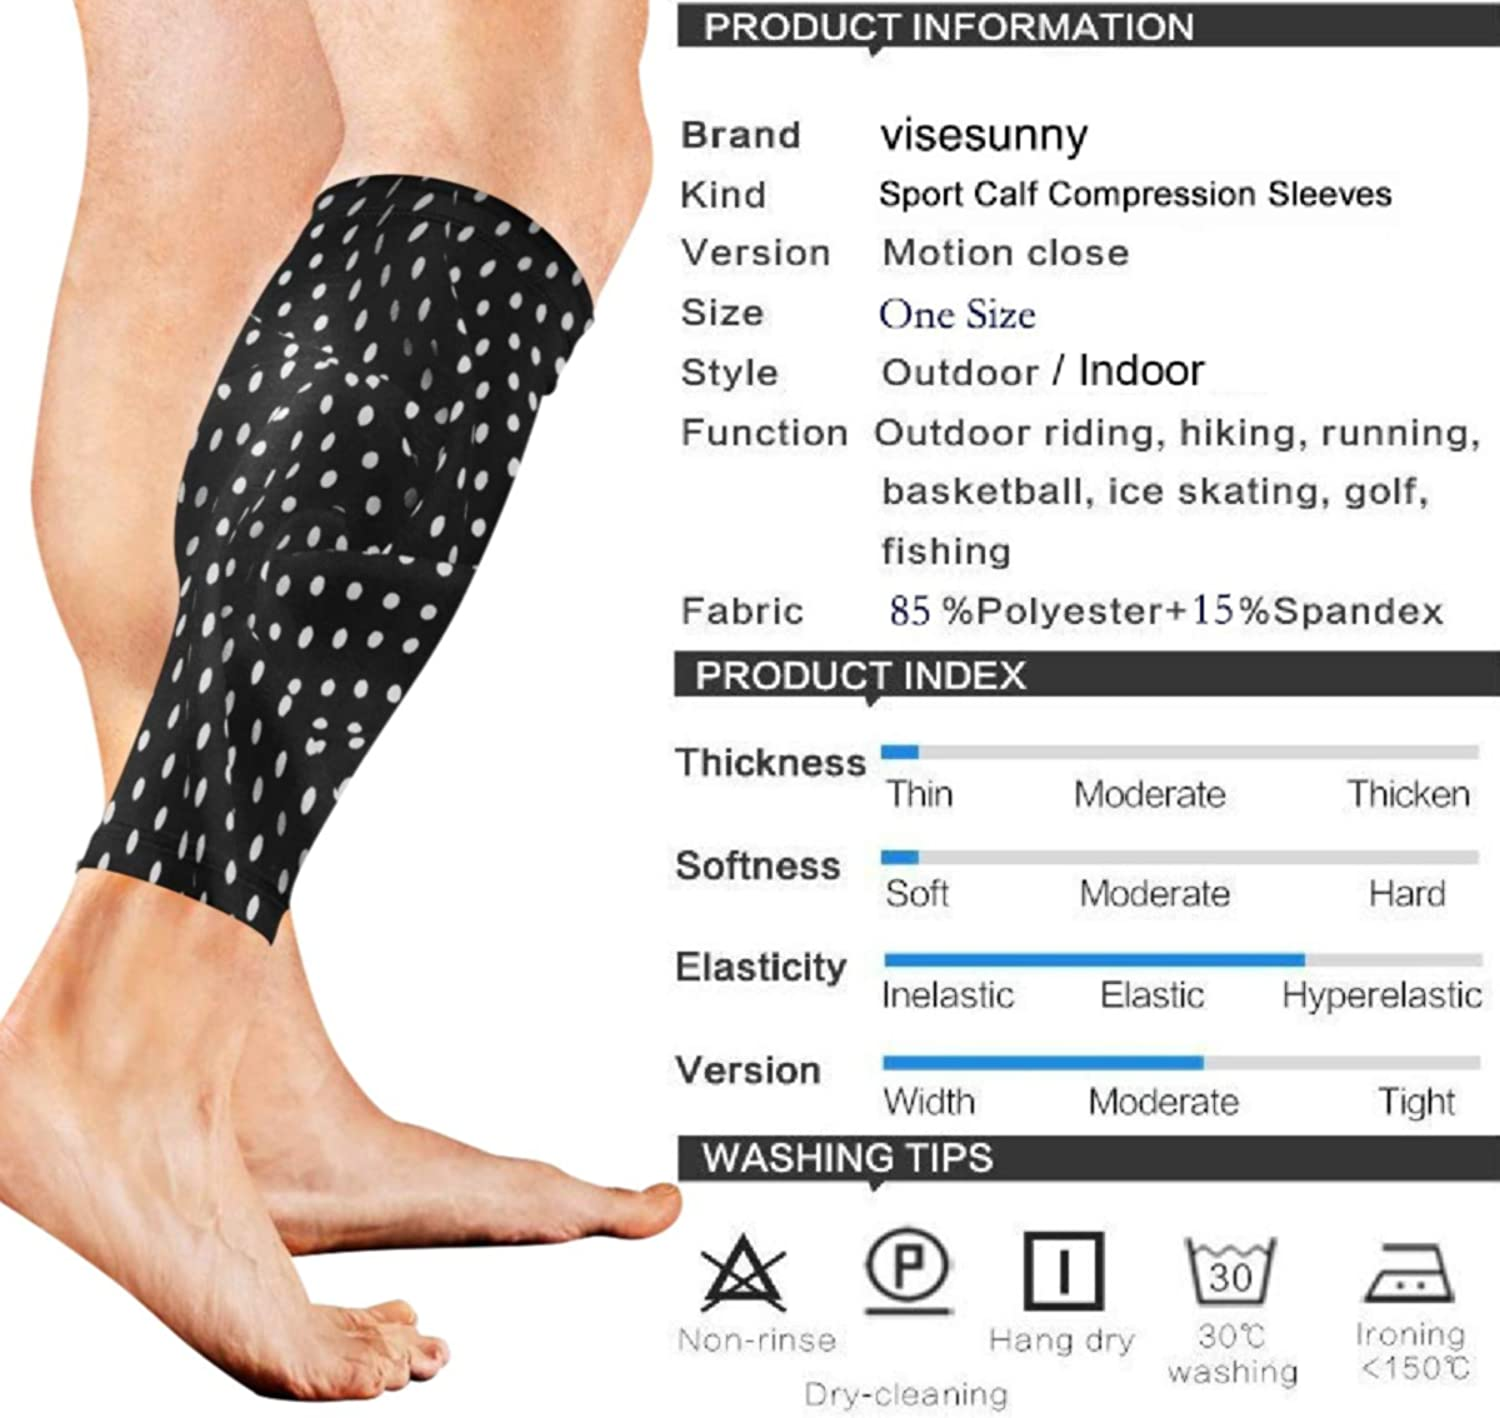 visesunny Polka Dot Pattern Sports Calf Sleeves for Muscle Pain Relief, Improved Circulation Compression Effective Support for Running, Jogging,Workout, Walking & Recovery(1 Pair)